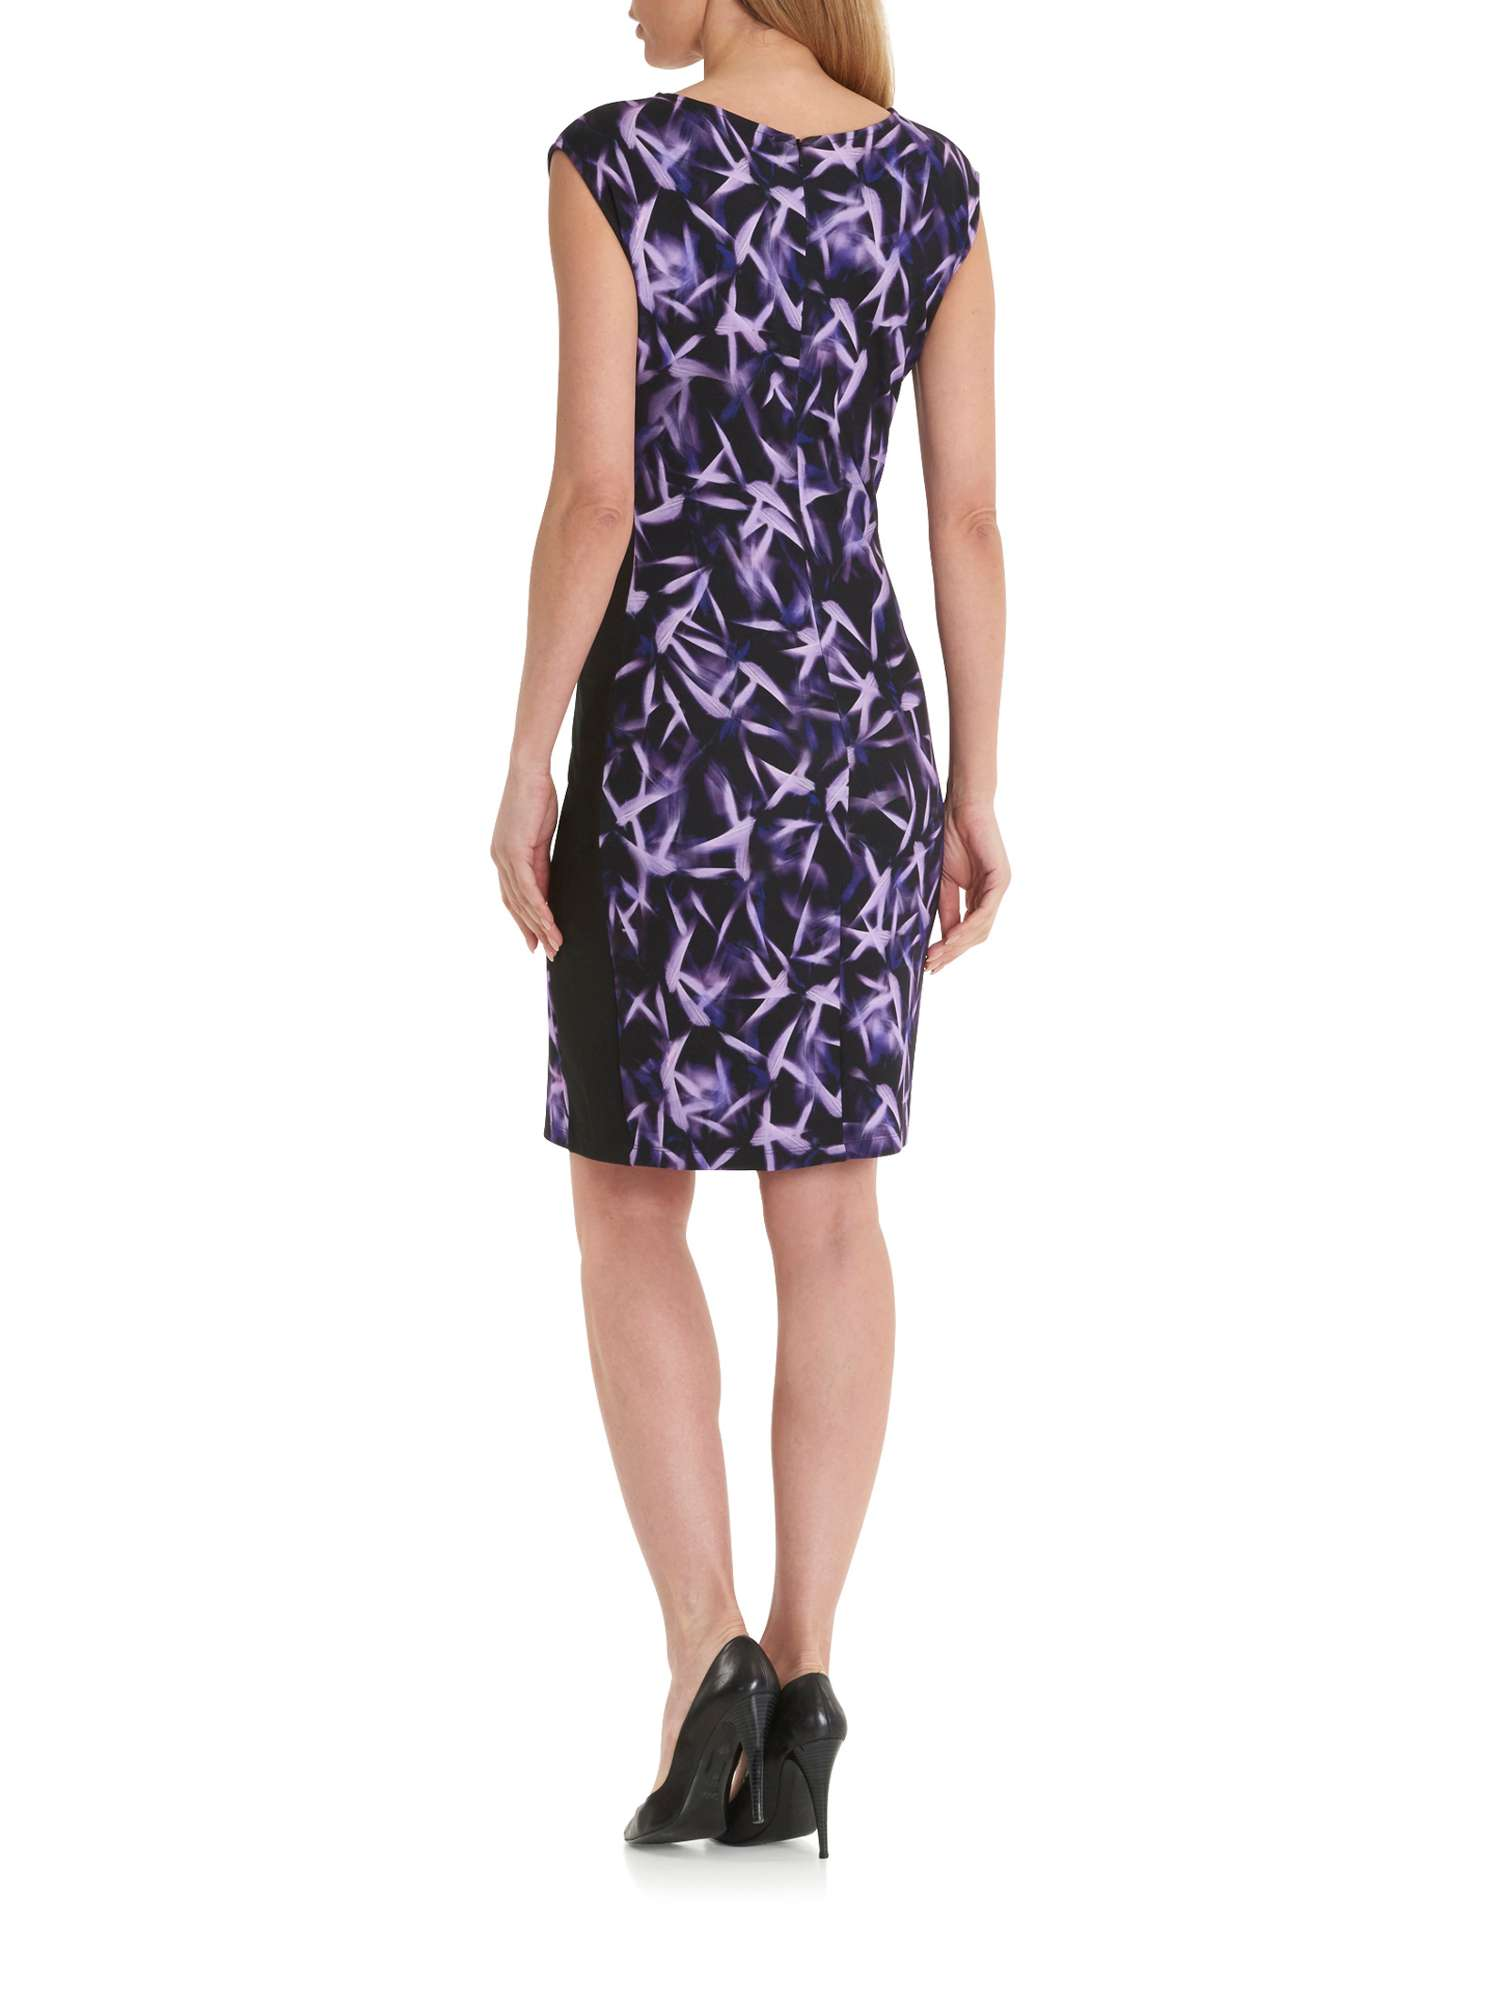 Co Print Brush Betty amp; Dress OXxnYwUBP